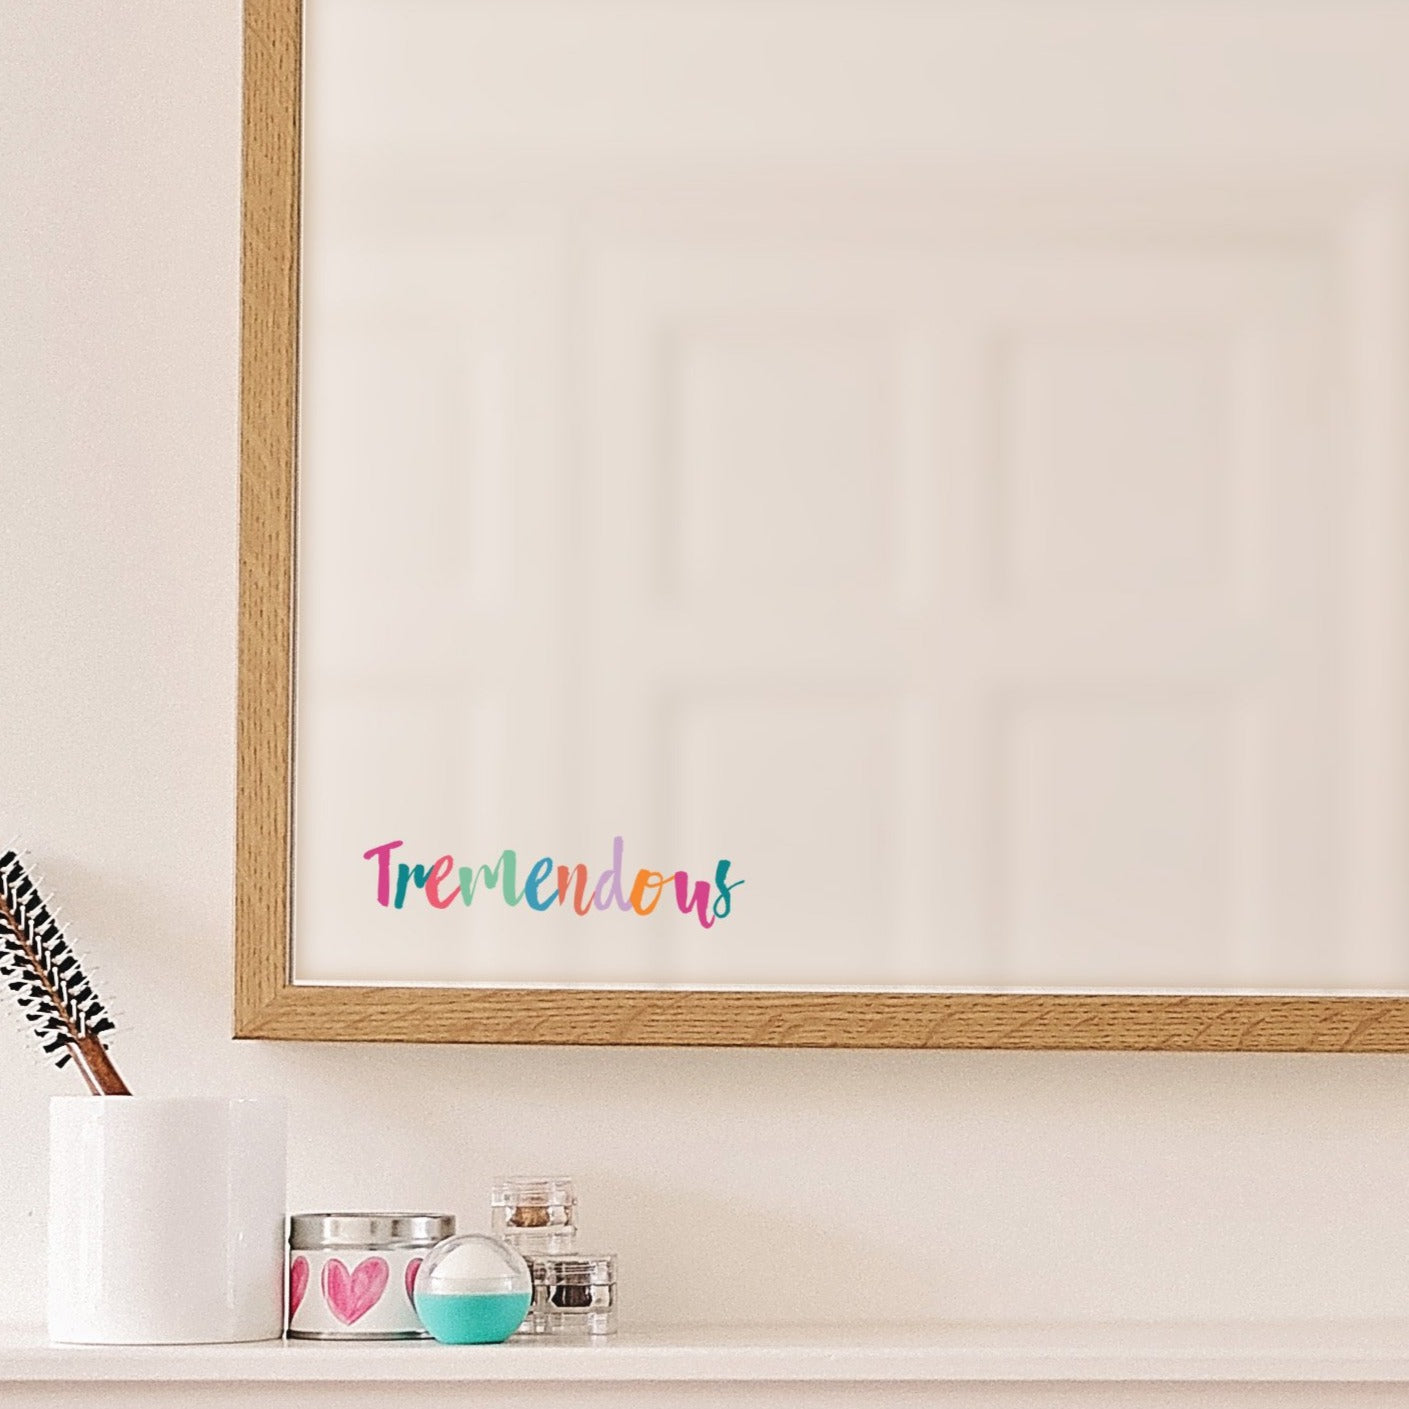 Tremendous Mirror Sticker - Rainbow Pastels